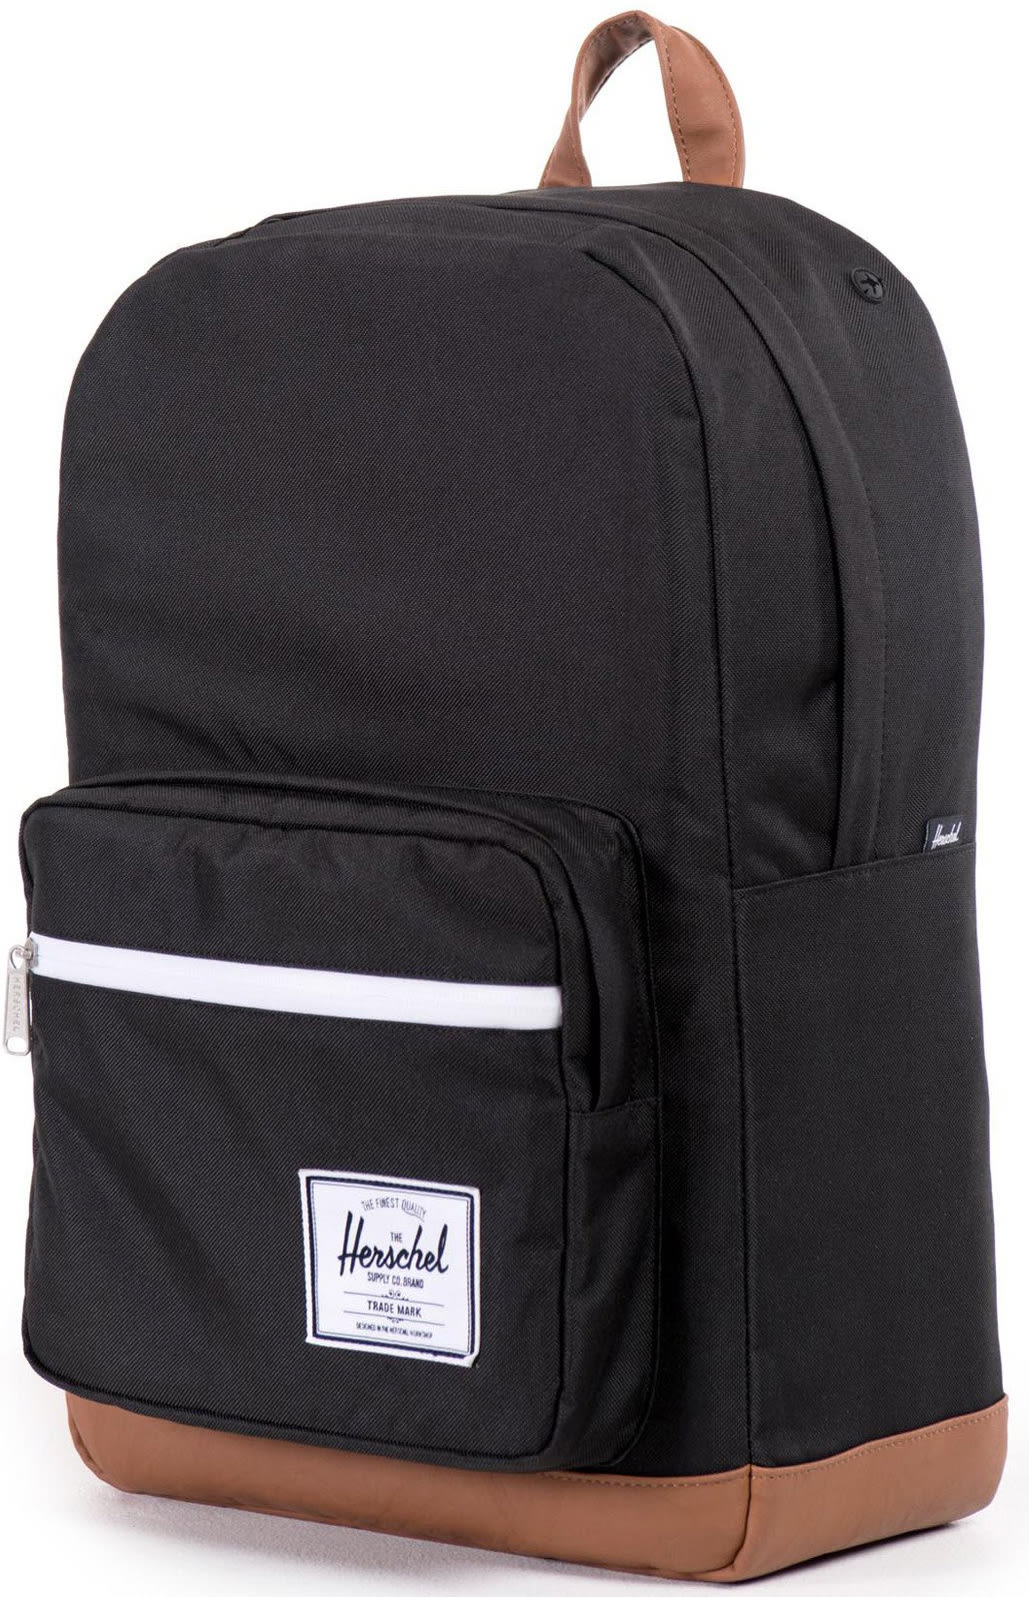 on sale herschel pop quiz backpack up to 40 off. Black Bedroom Furniture Sets. Home Design Ideas